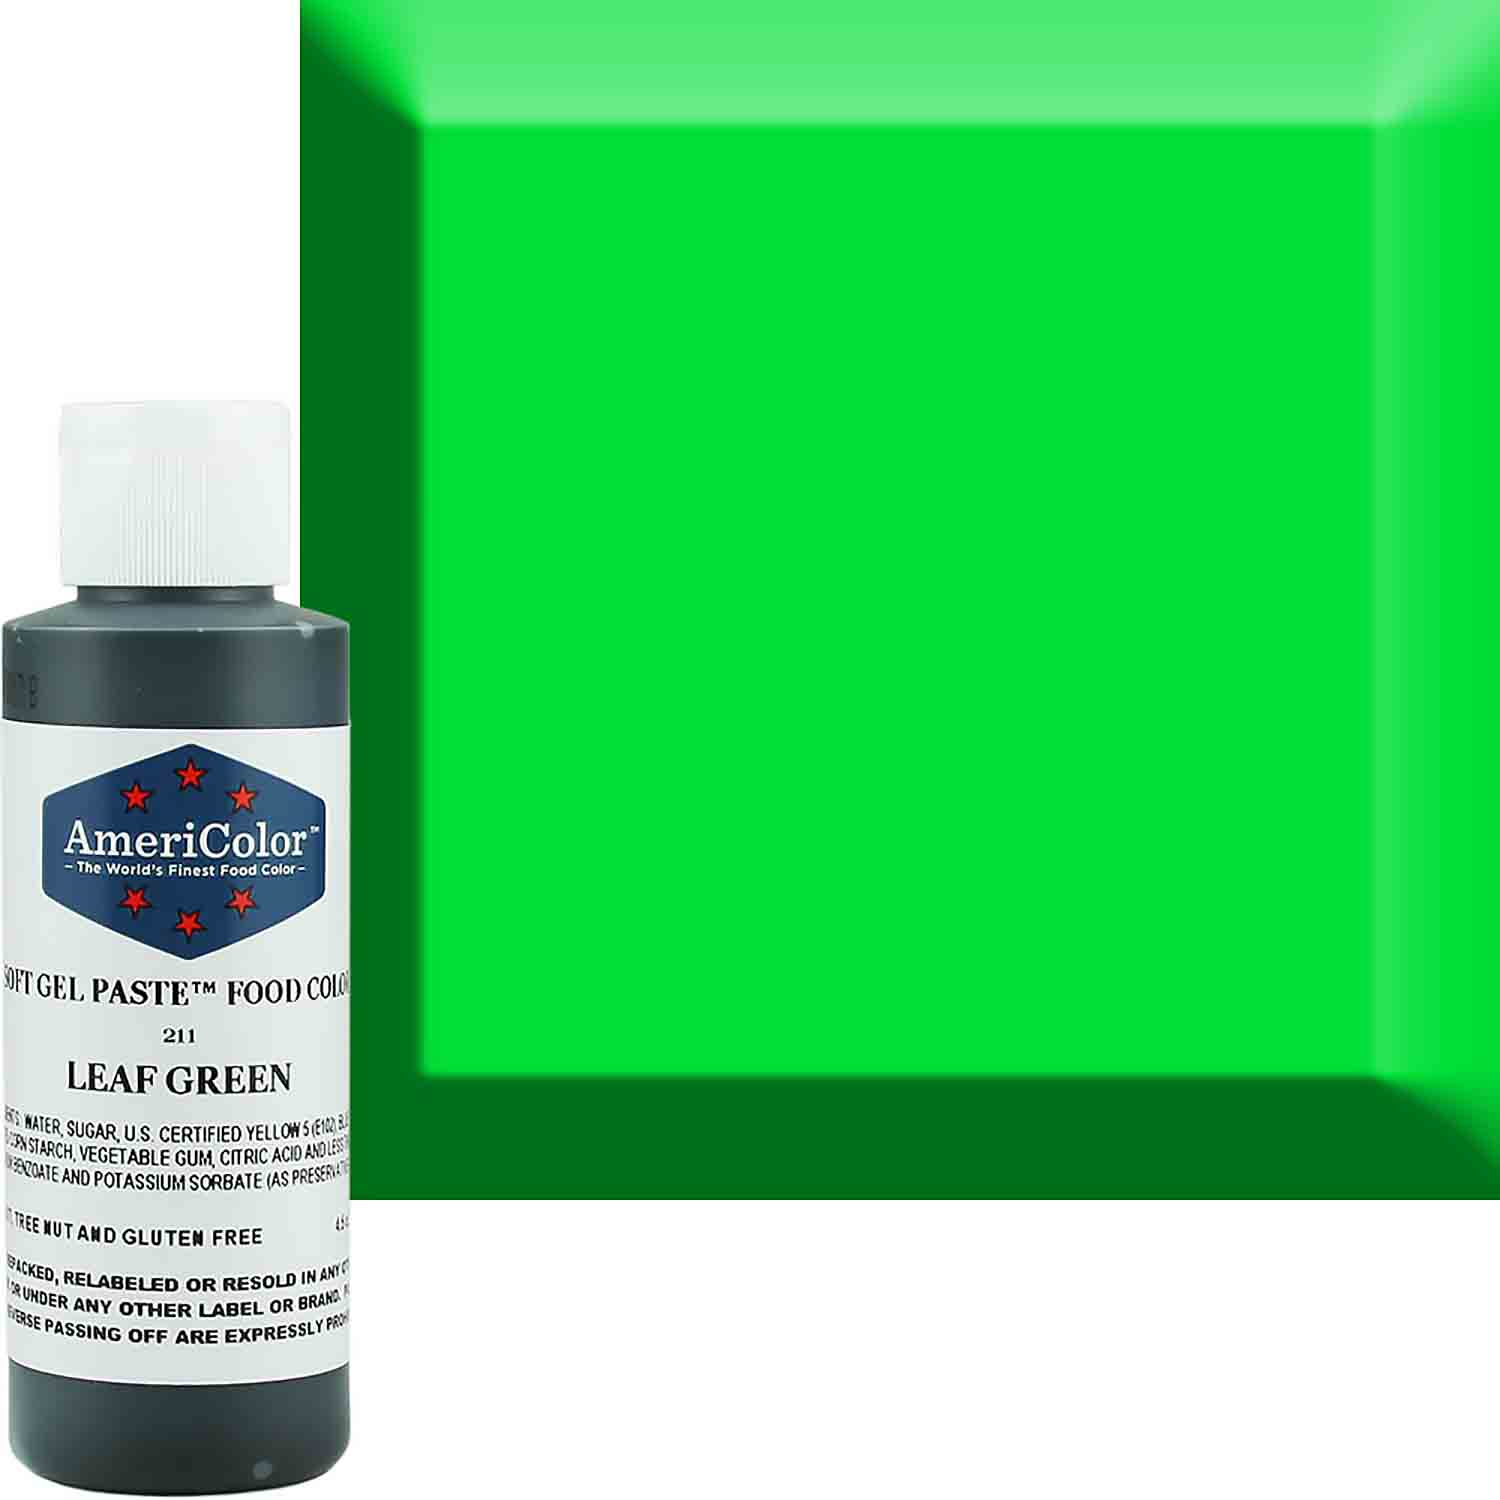 Leaf Green Soft Gel Paste™ Food Color